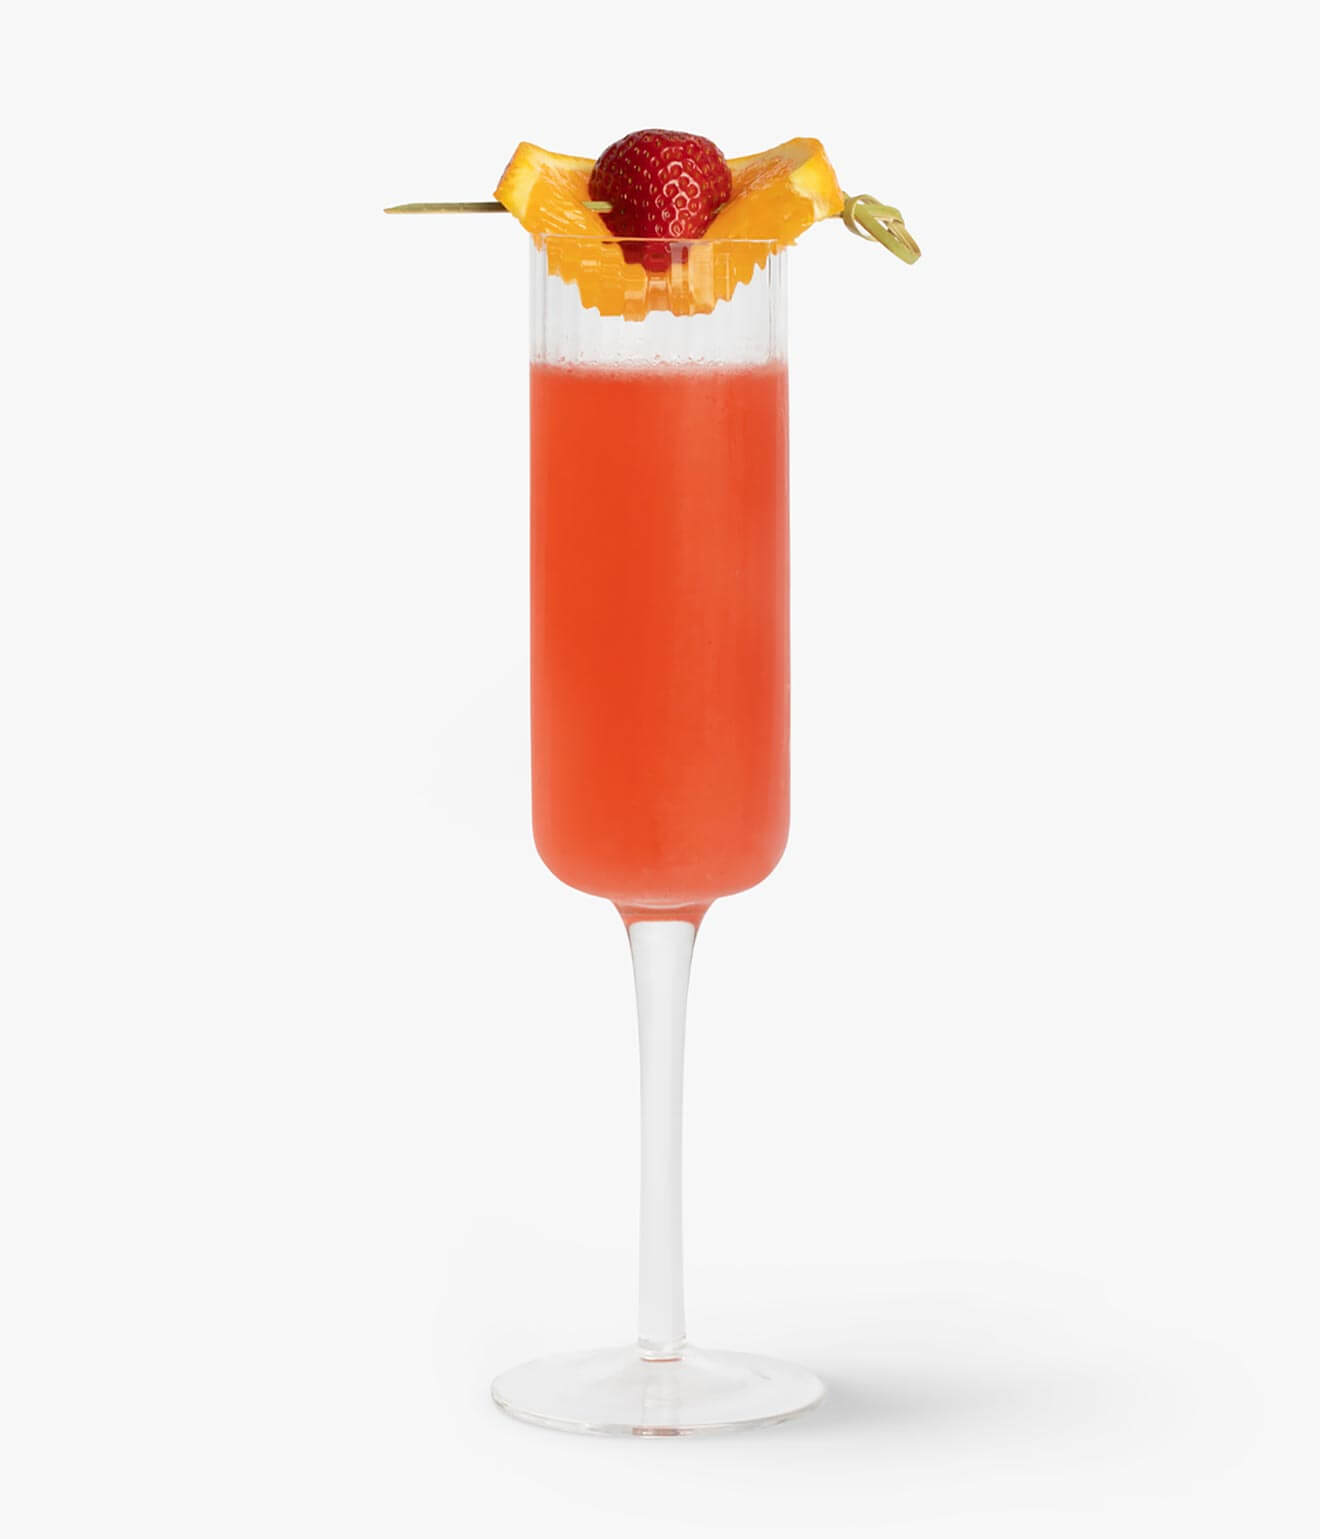 Beefeater Pink Mimosa, cocktail with garnishes on white